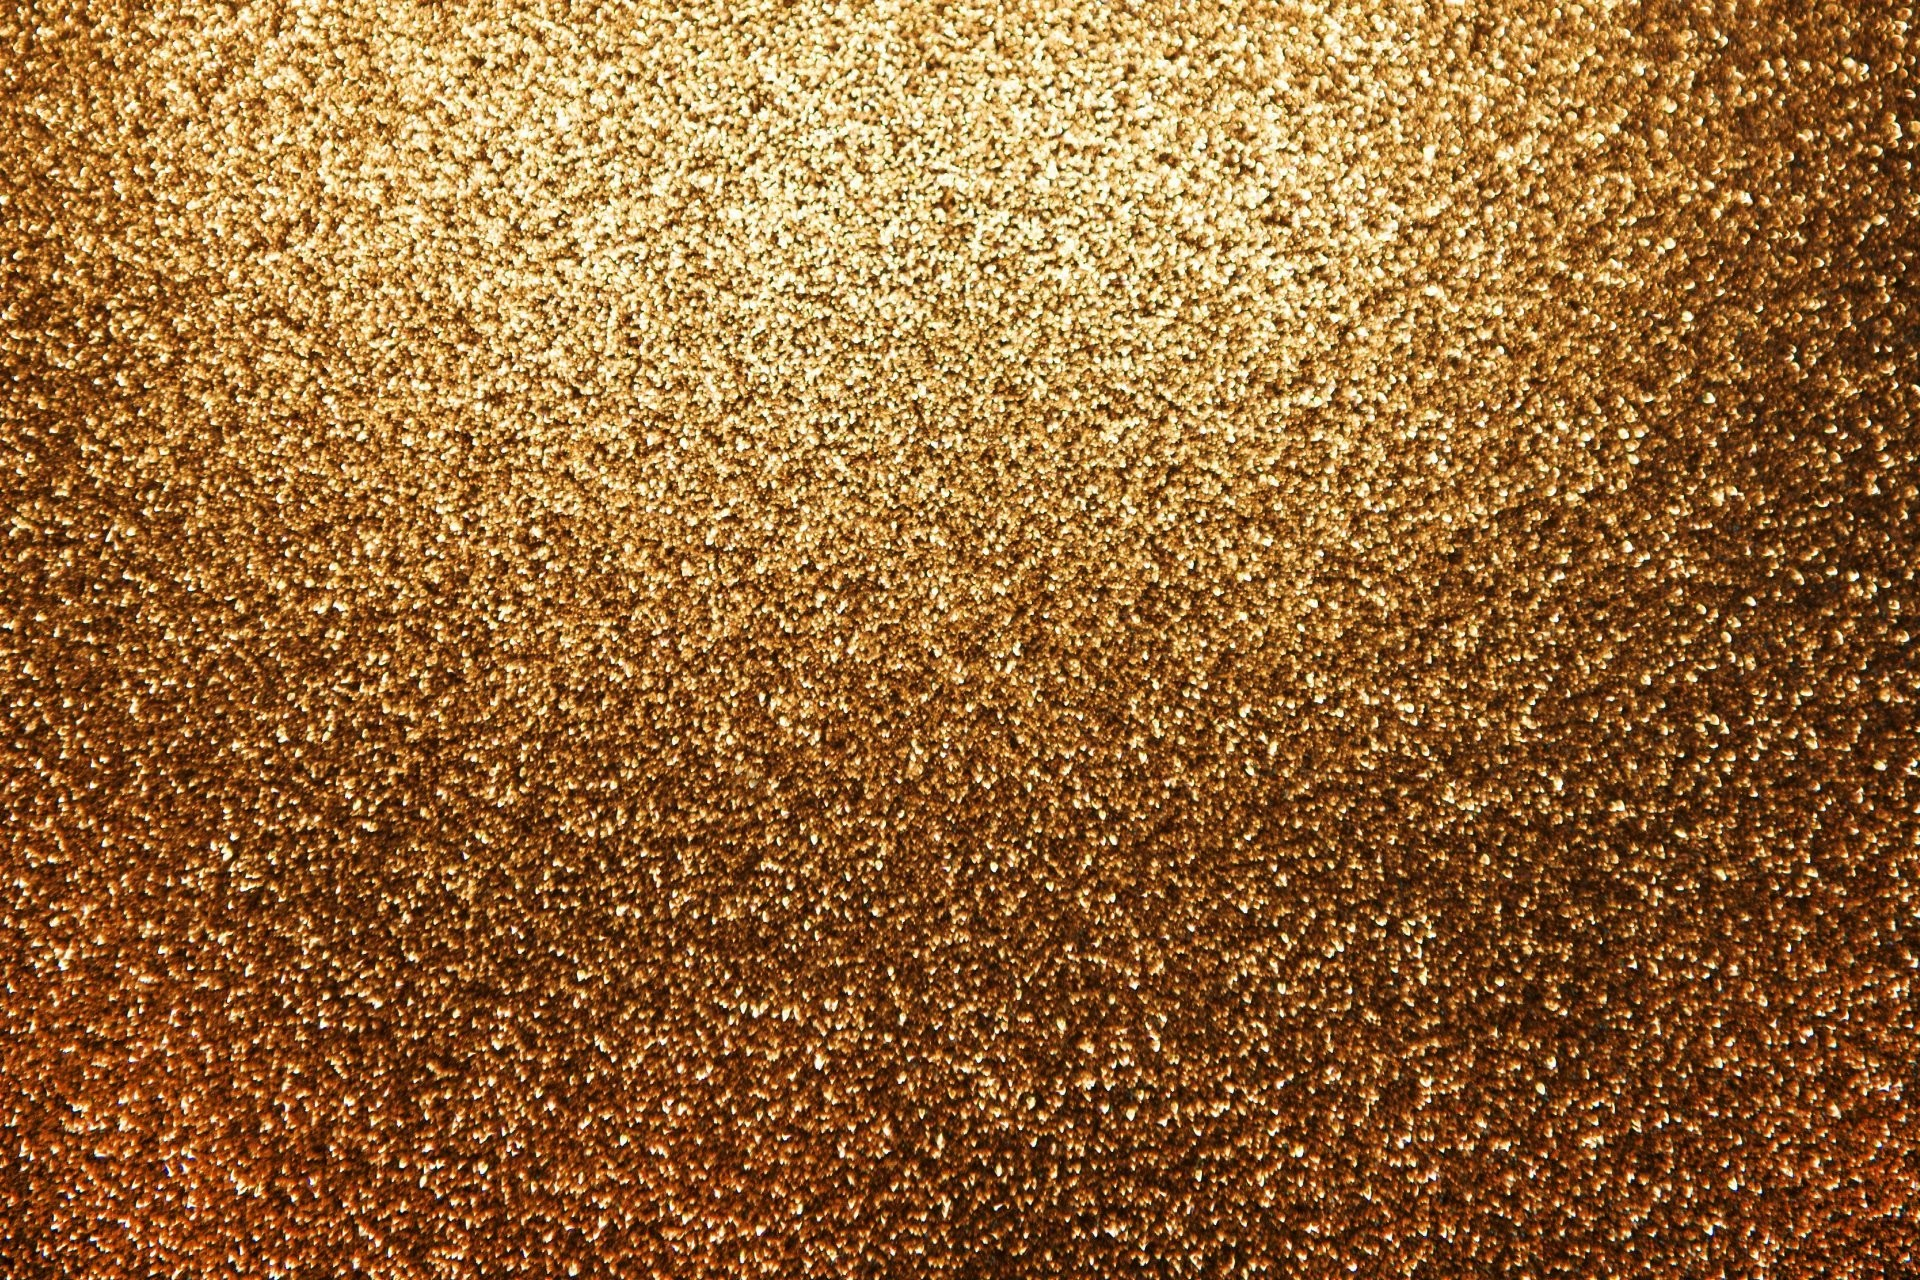 gold gold dust texture sand shine radiance gold golden sand textures sand  shine lights